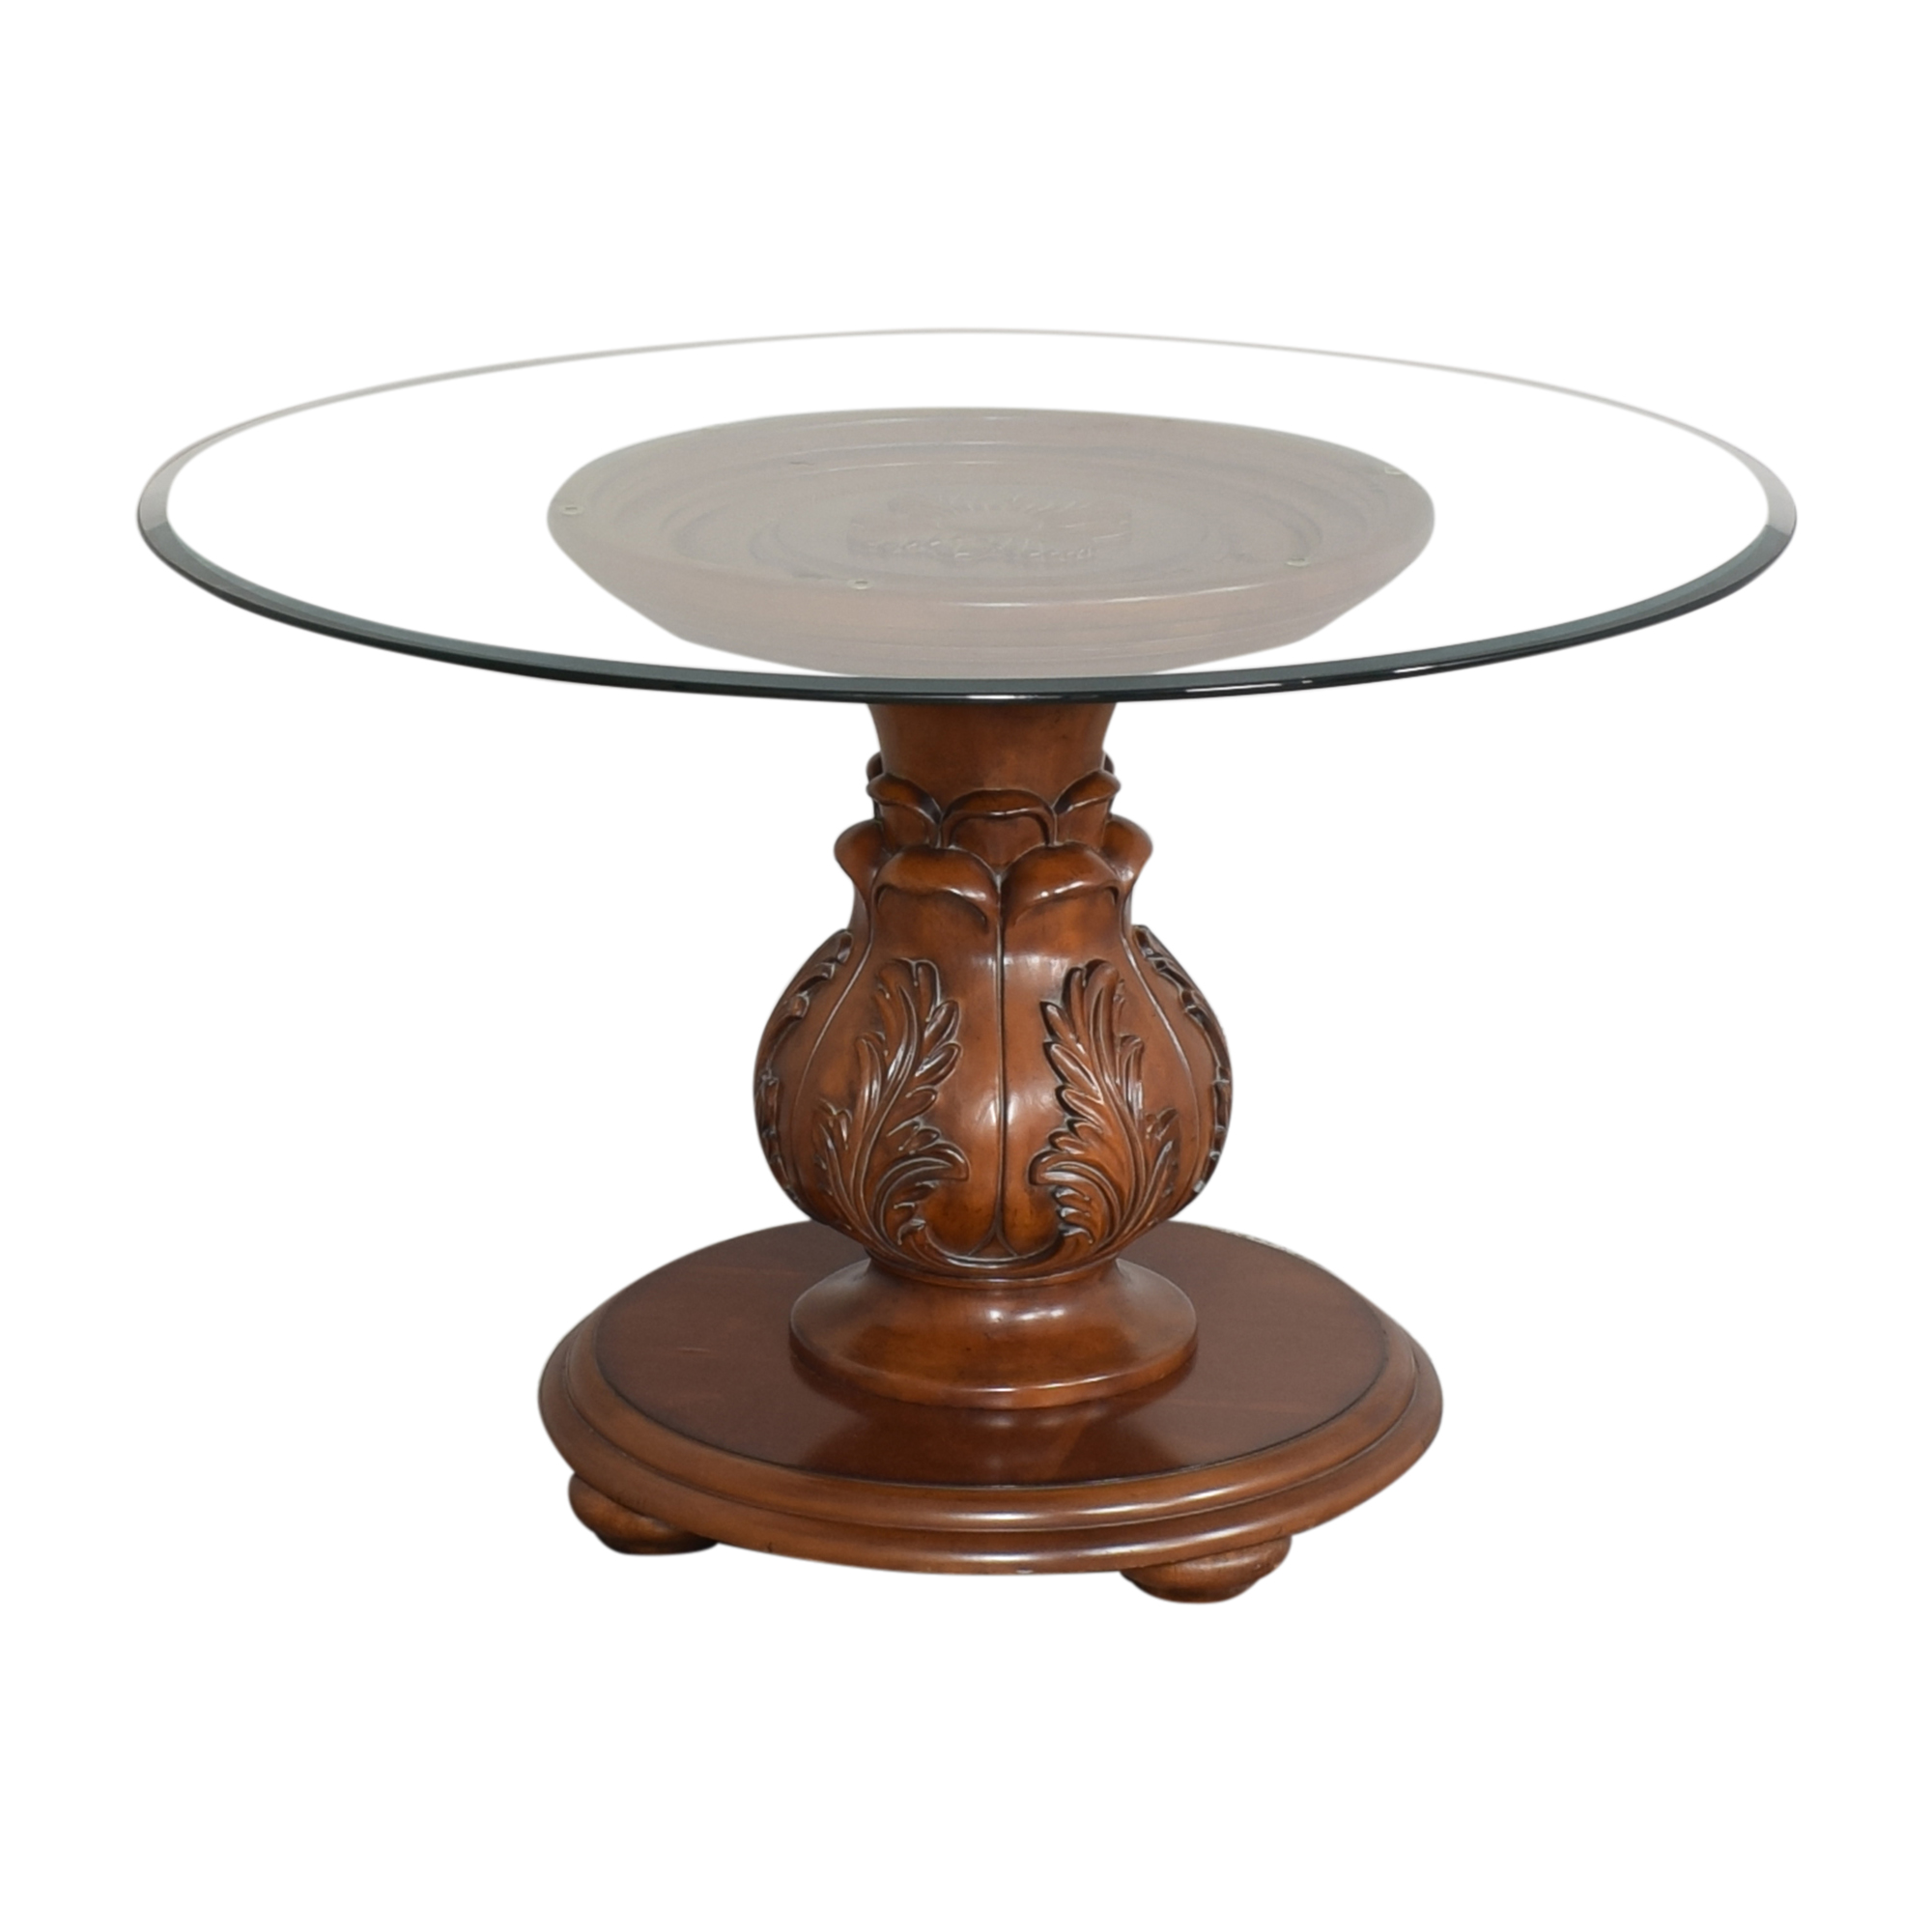 Broyhill Furniture Broyhill Furniture Sunset Pointe Pedestal Table nyc